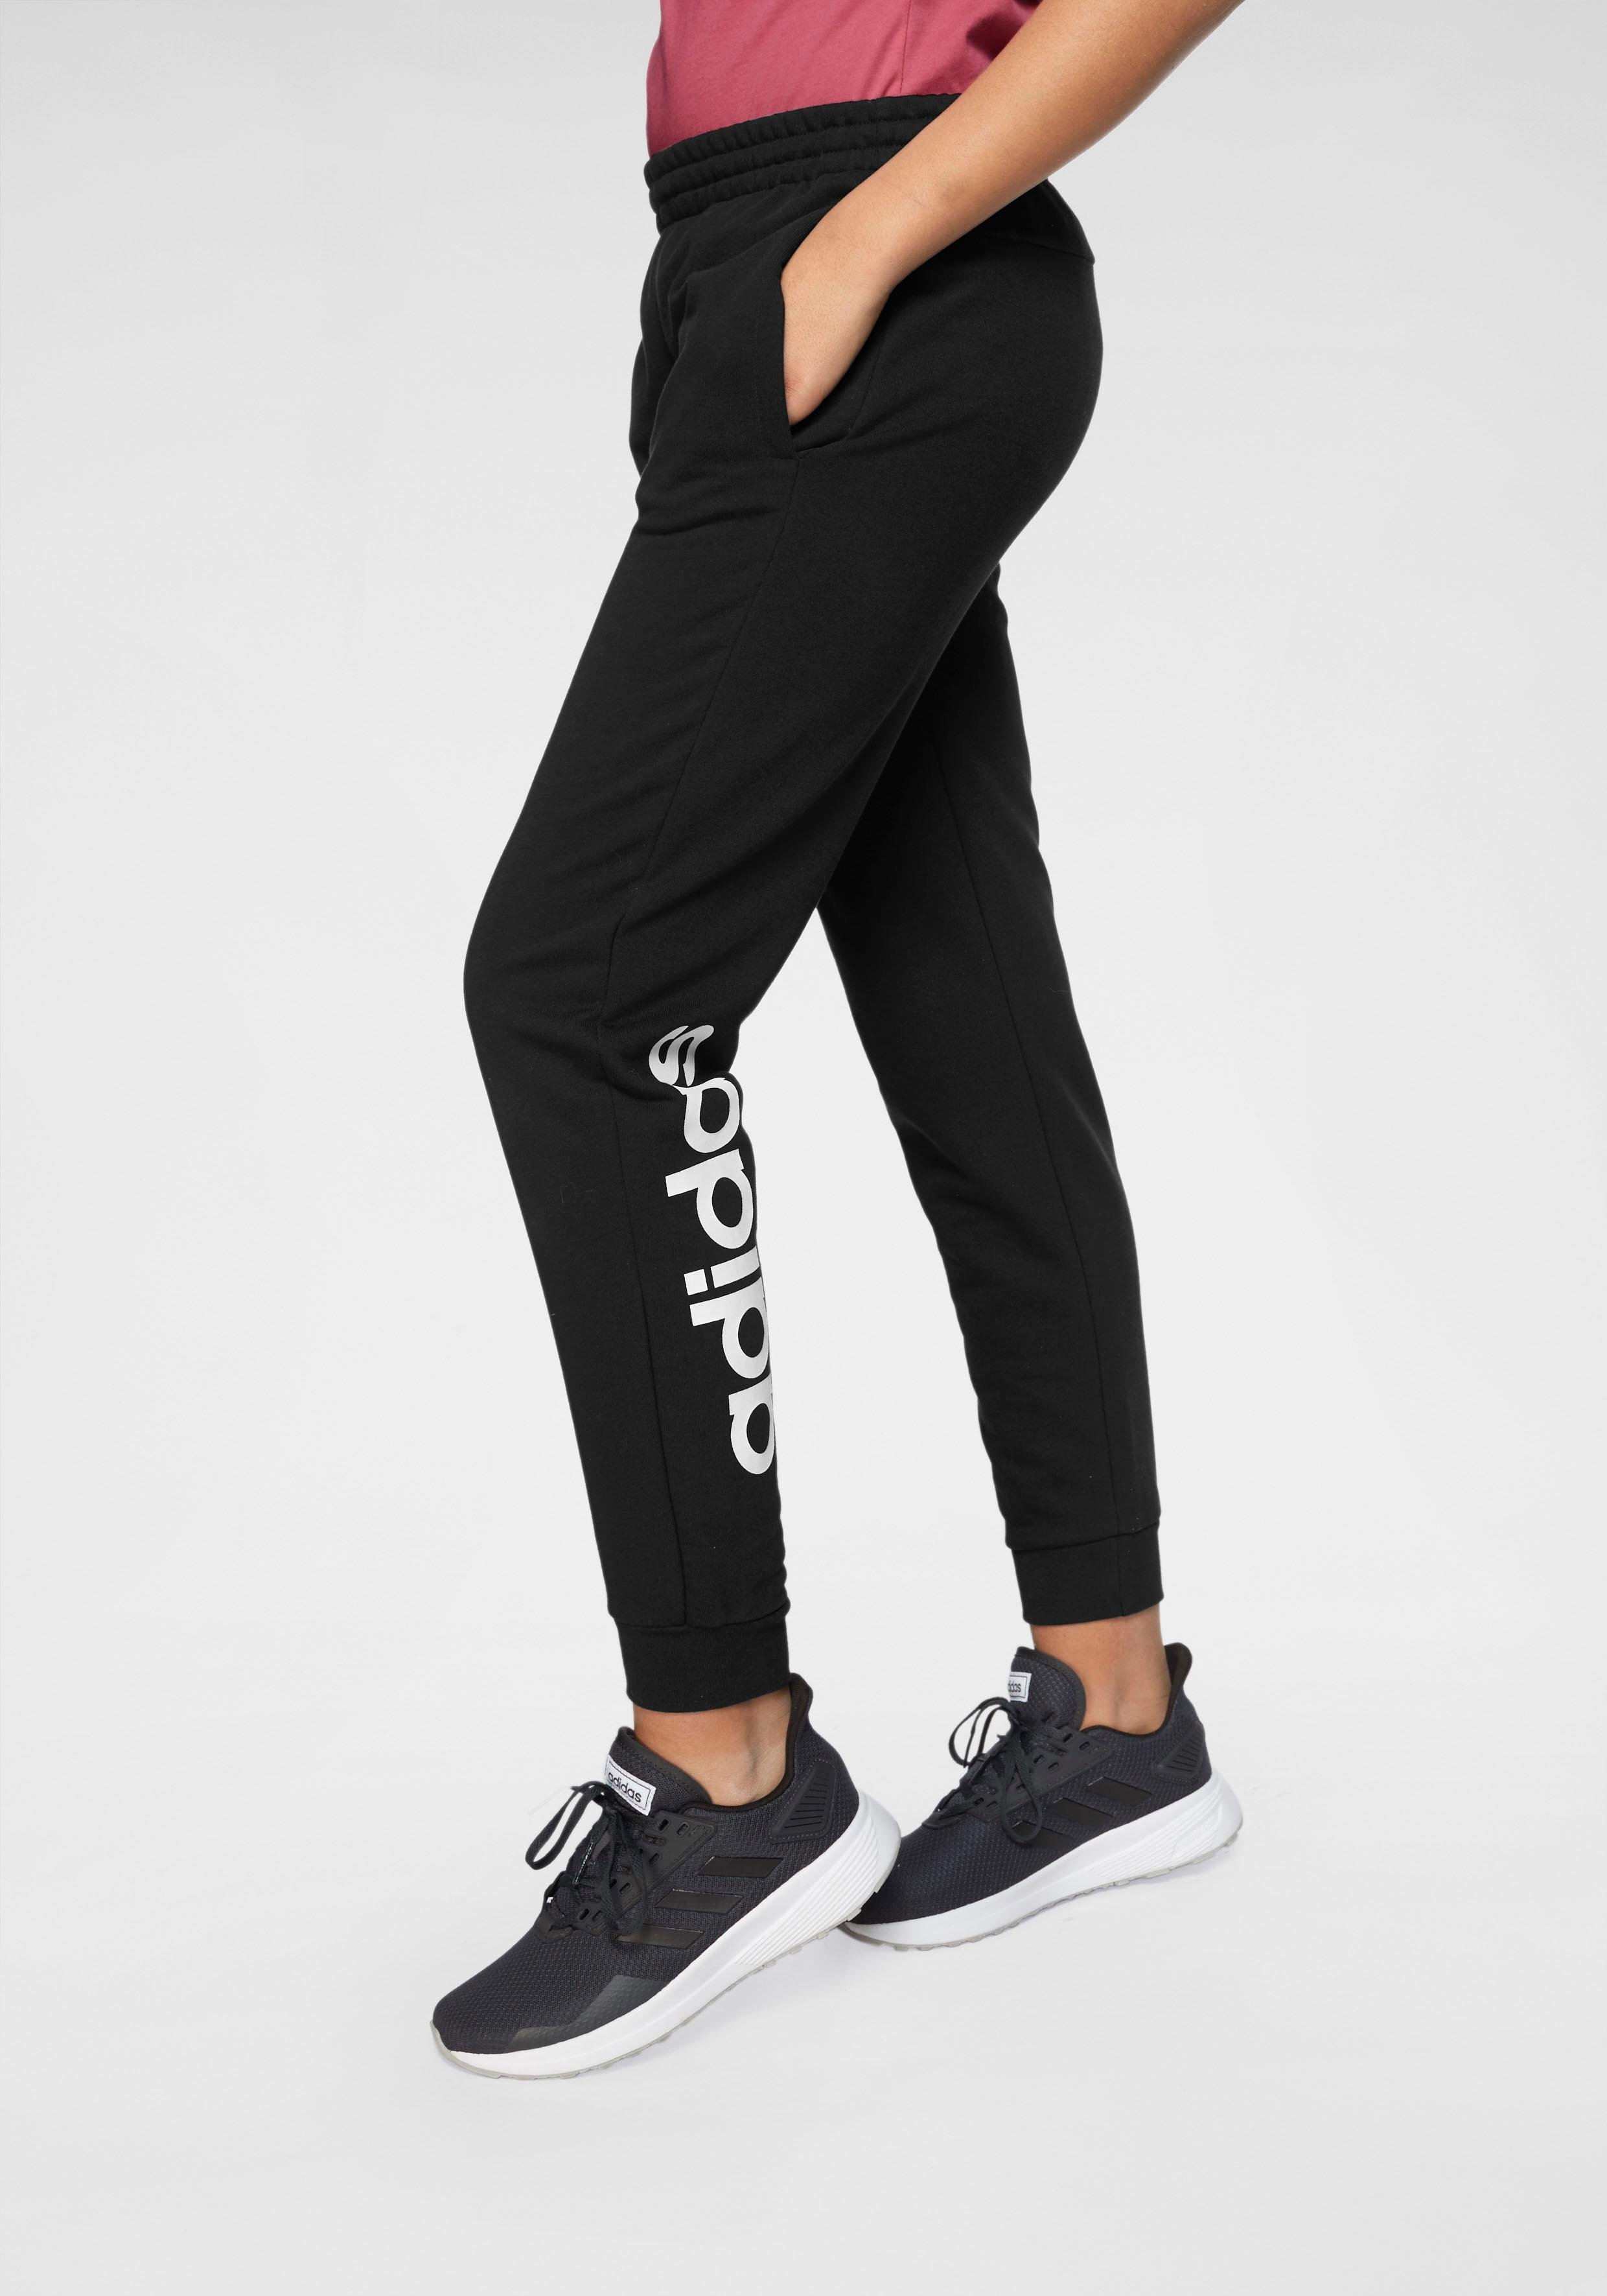 adidas Performance adidas joggingbroek »YOUTH GIRLS ESSENTIAL LINE PANT« - gratis ruilen op otto.nl